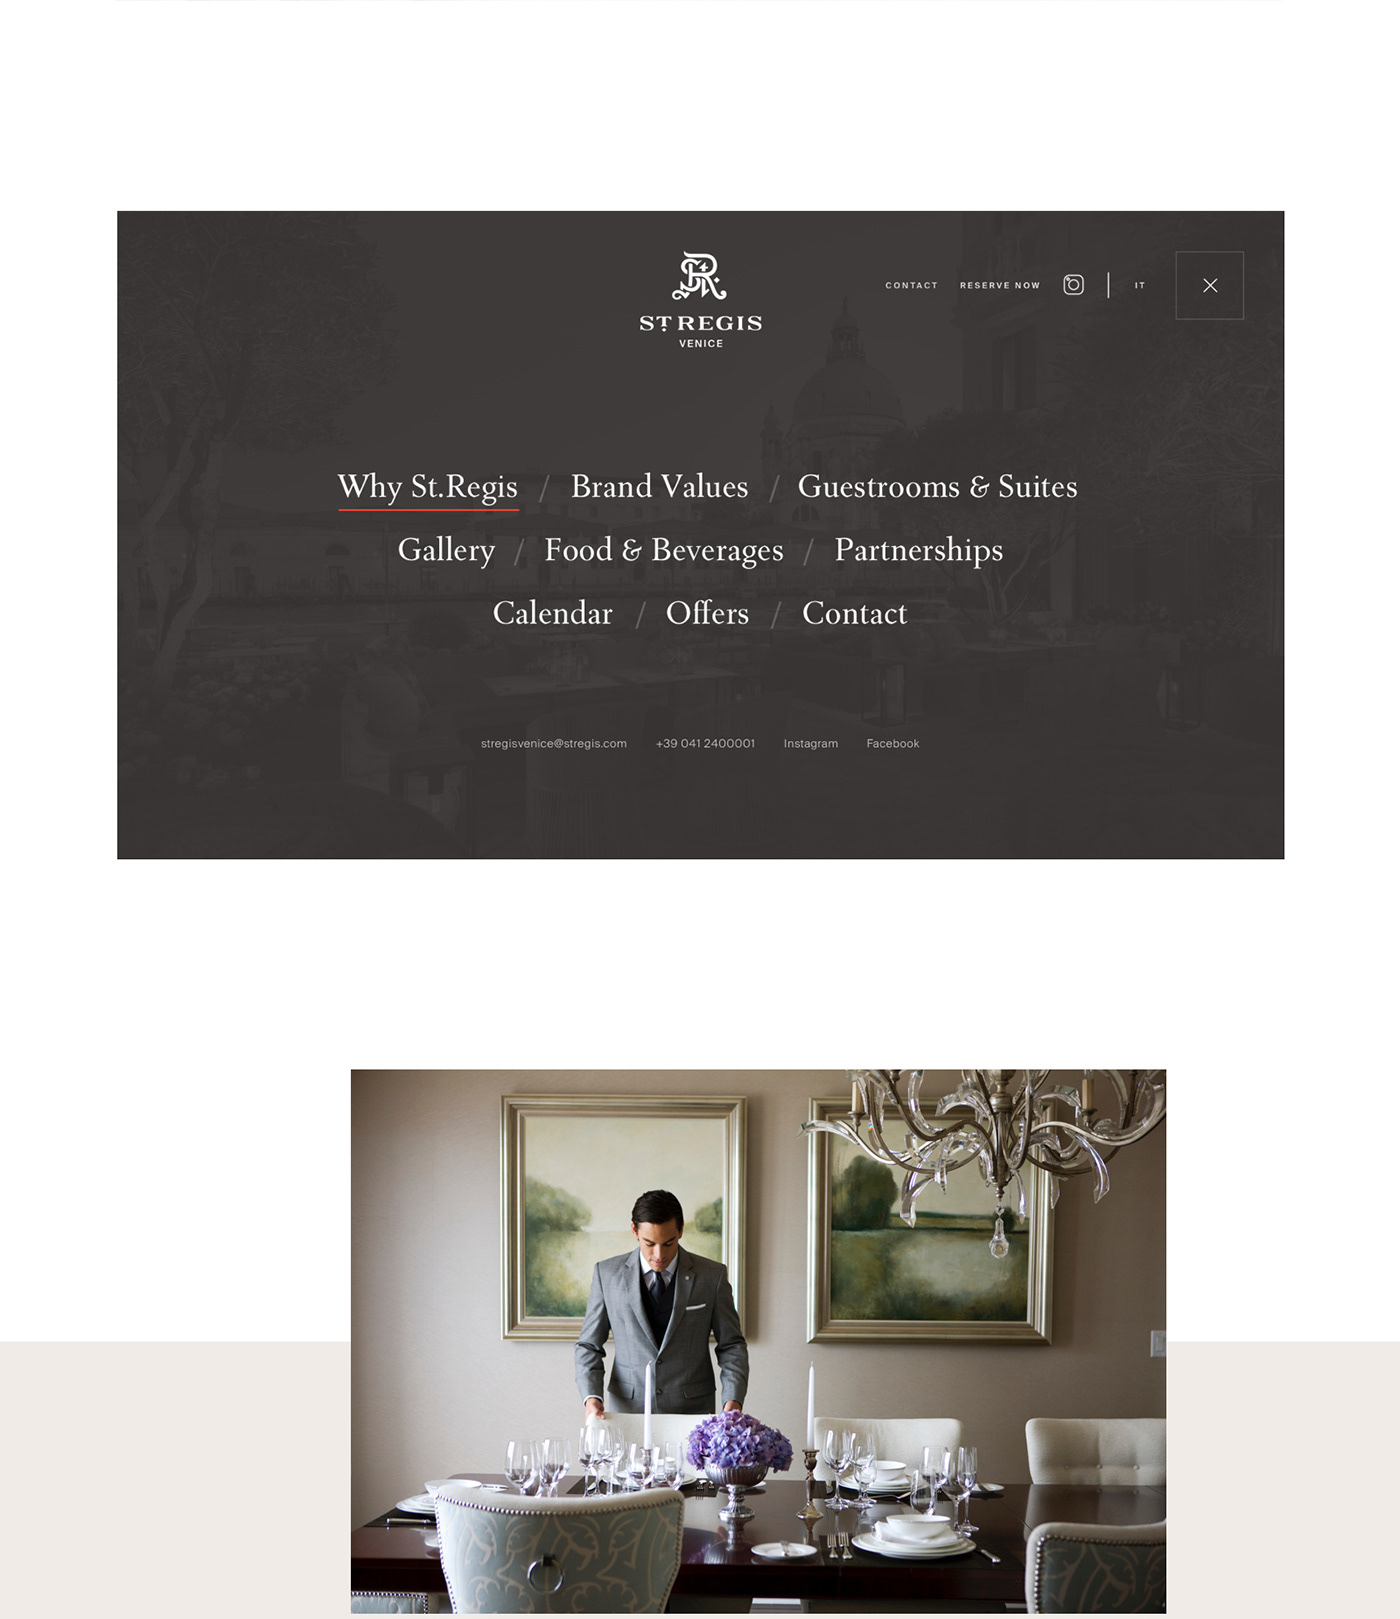 Menu of the website of the St.Regis one pager